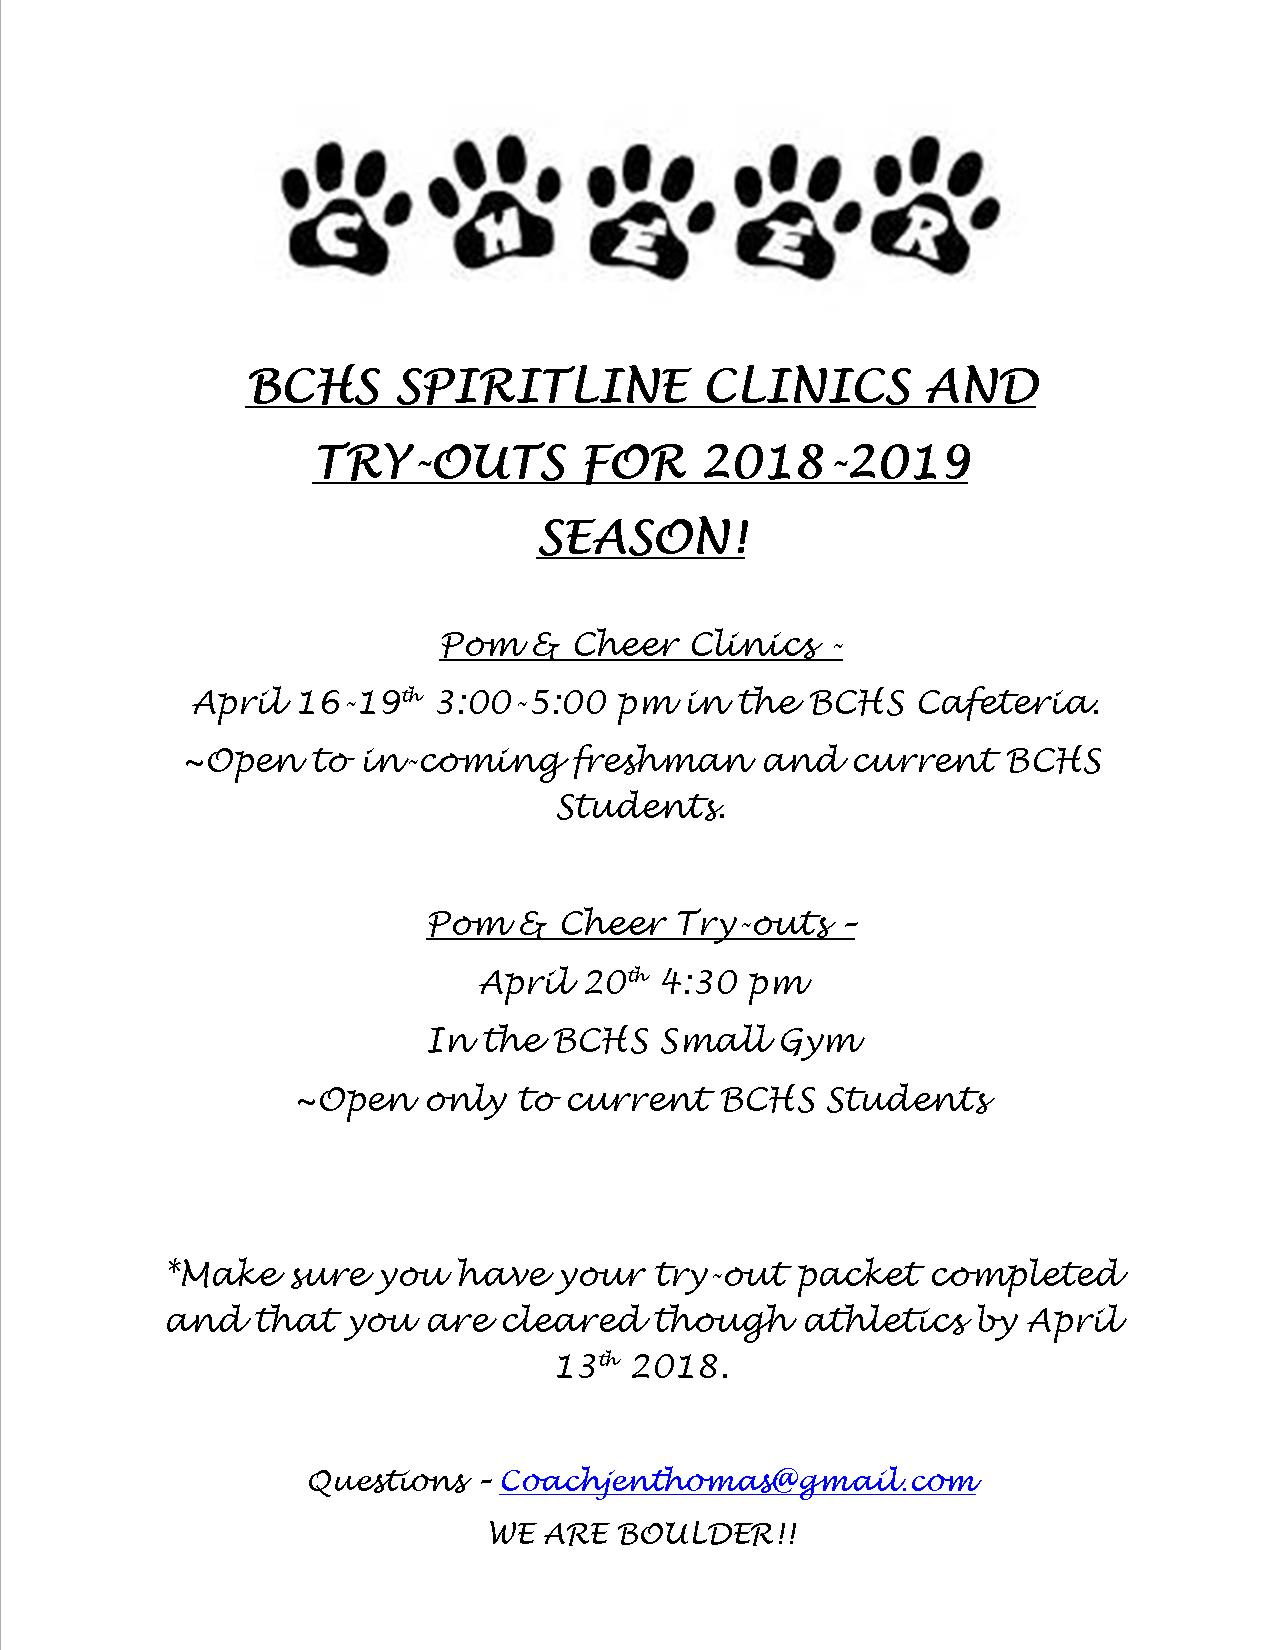 2018-2019 BCHS Spiritline Clinics and Try-Outs